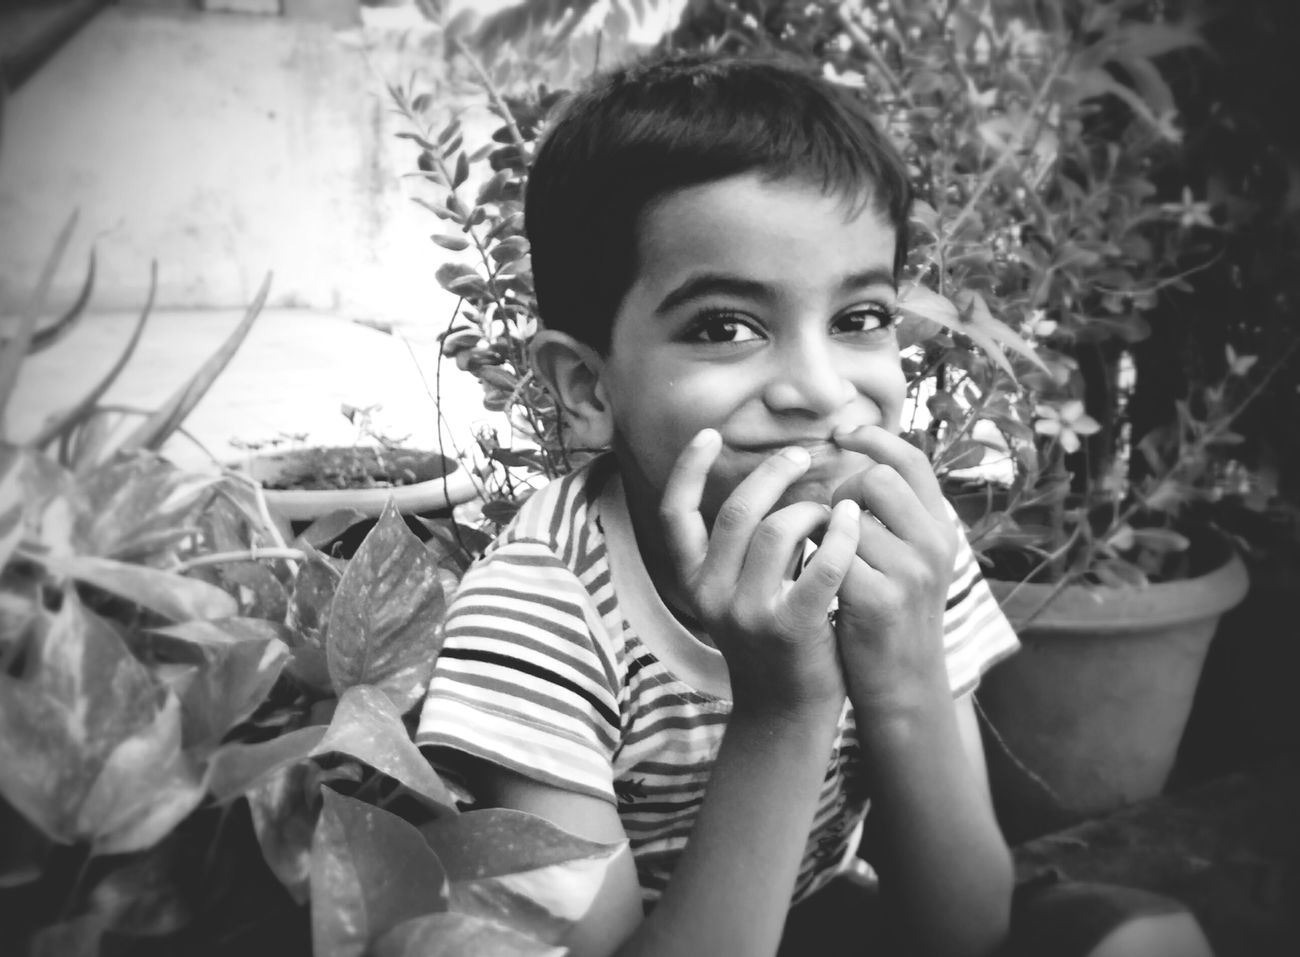 The Human Condition Notes Of An Innocent Childhood Innocent Smile Children Blackandwhite EyeEm Best Shots - Black + White Smilebaby Smile ♥ EyeEm CHILDS SMILE